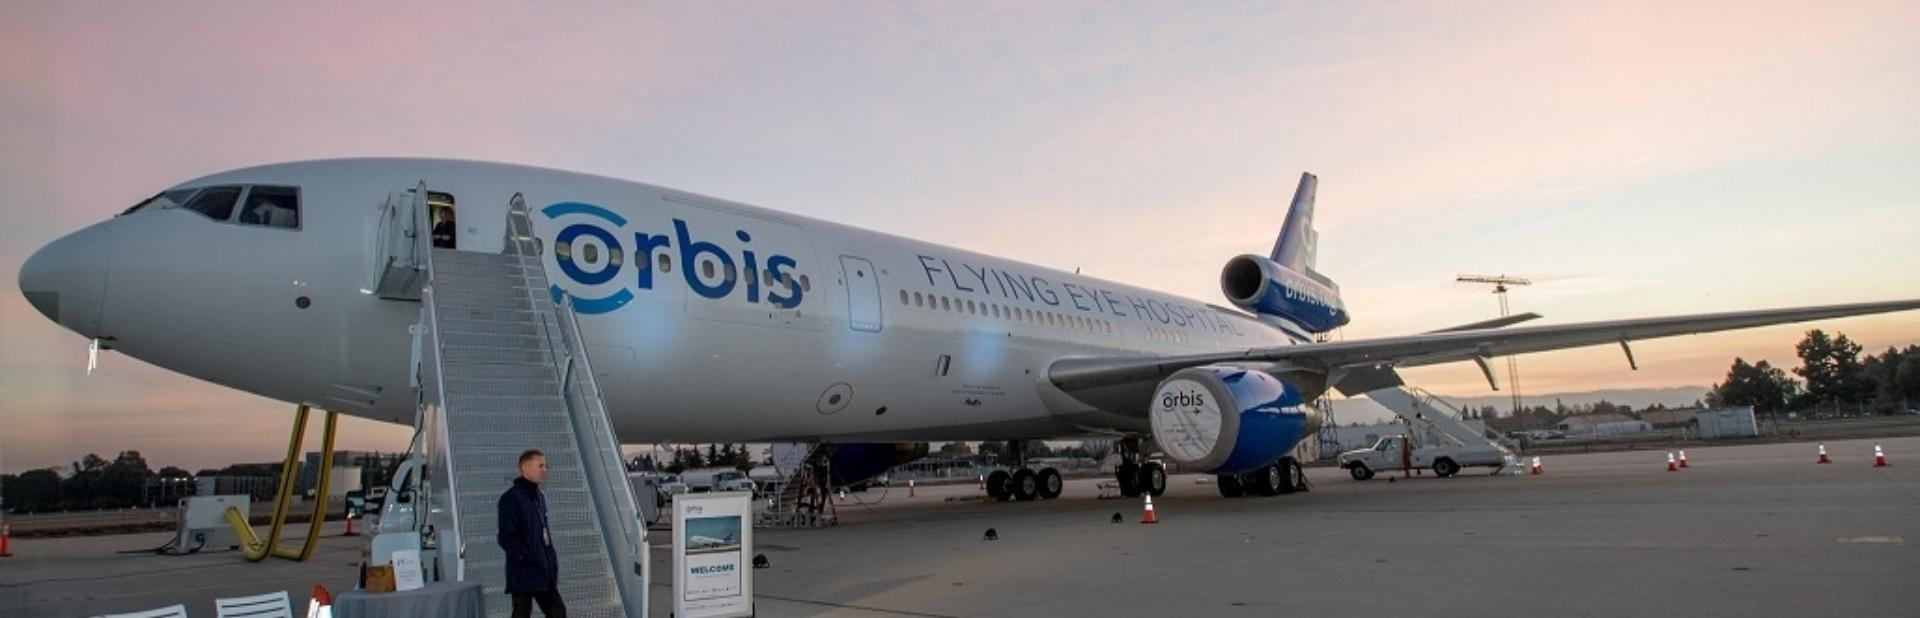 FLYING EYE HOSPITAL TOUCHES DOWN IN CALIFORNIA.